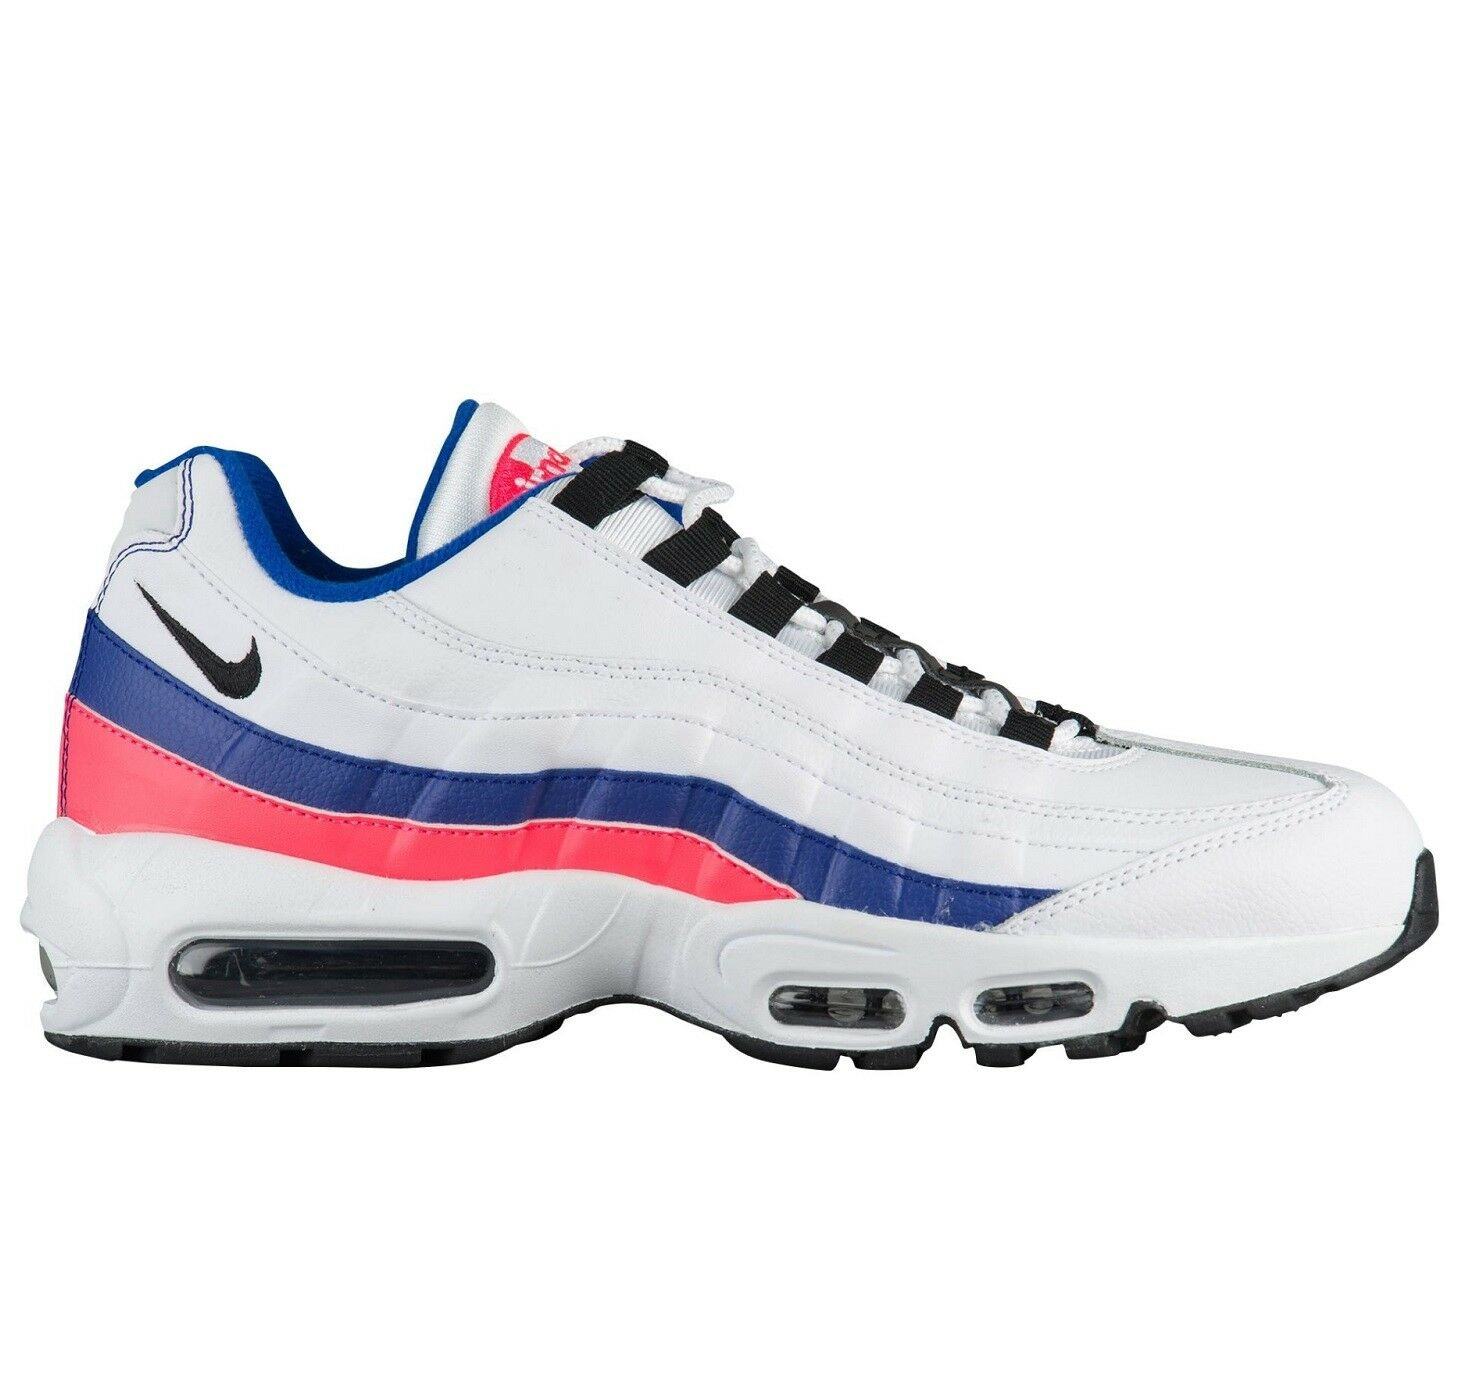 Nike Air Max 95 Essential Mens 749766-106 Ultramarine Solar Red Shoes Comfortable Comfortable and good-looking